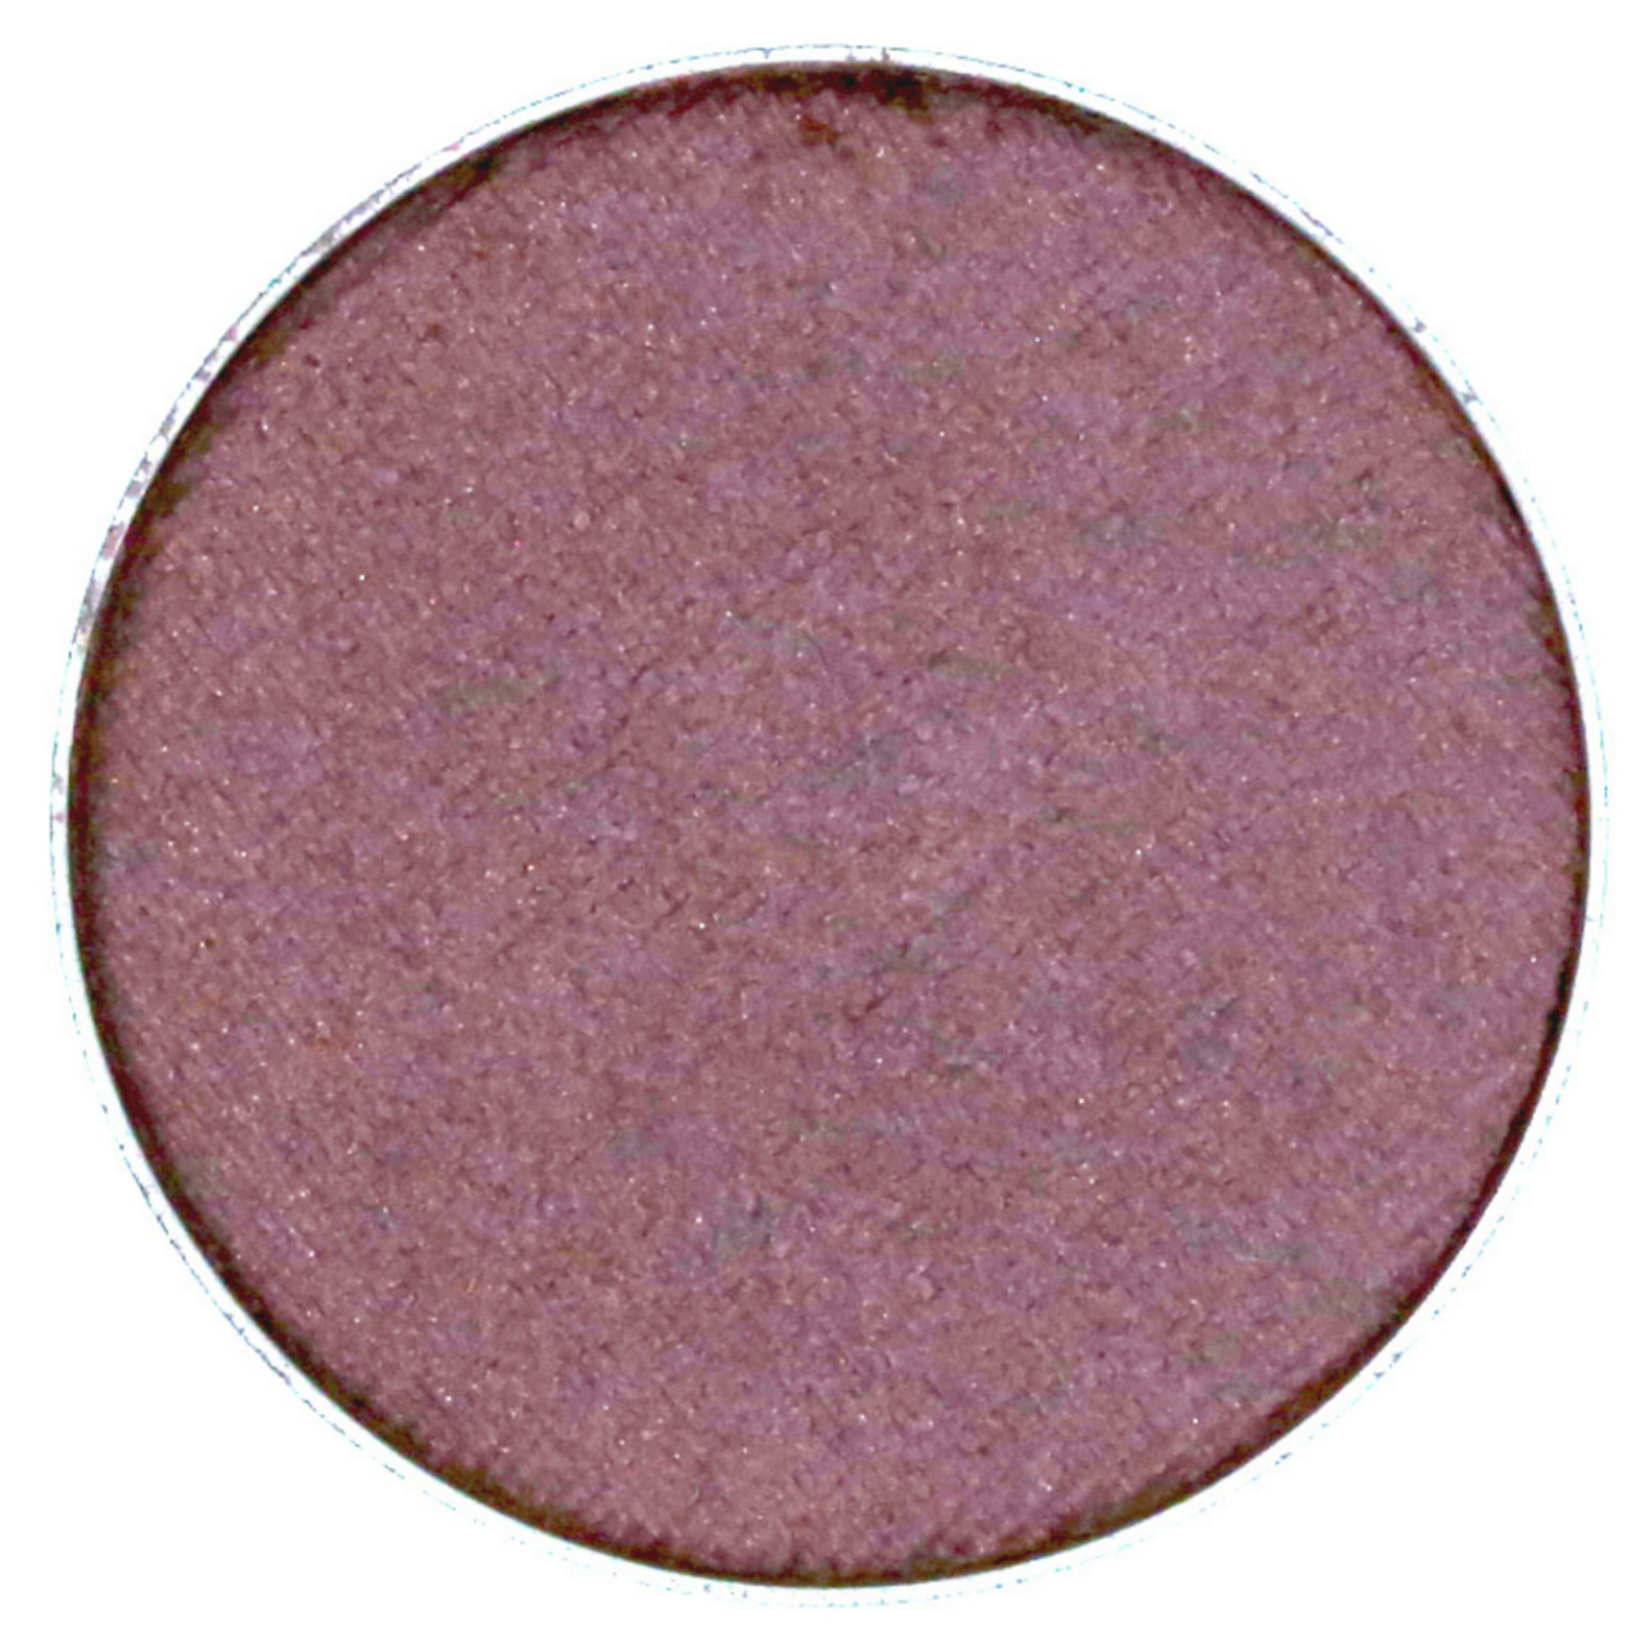 JKC EYESHADOW - Once and Floral